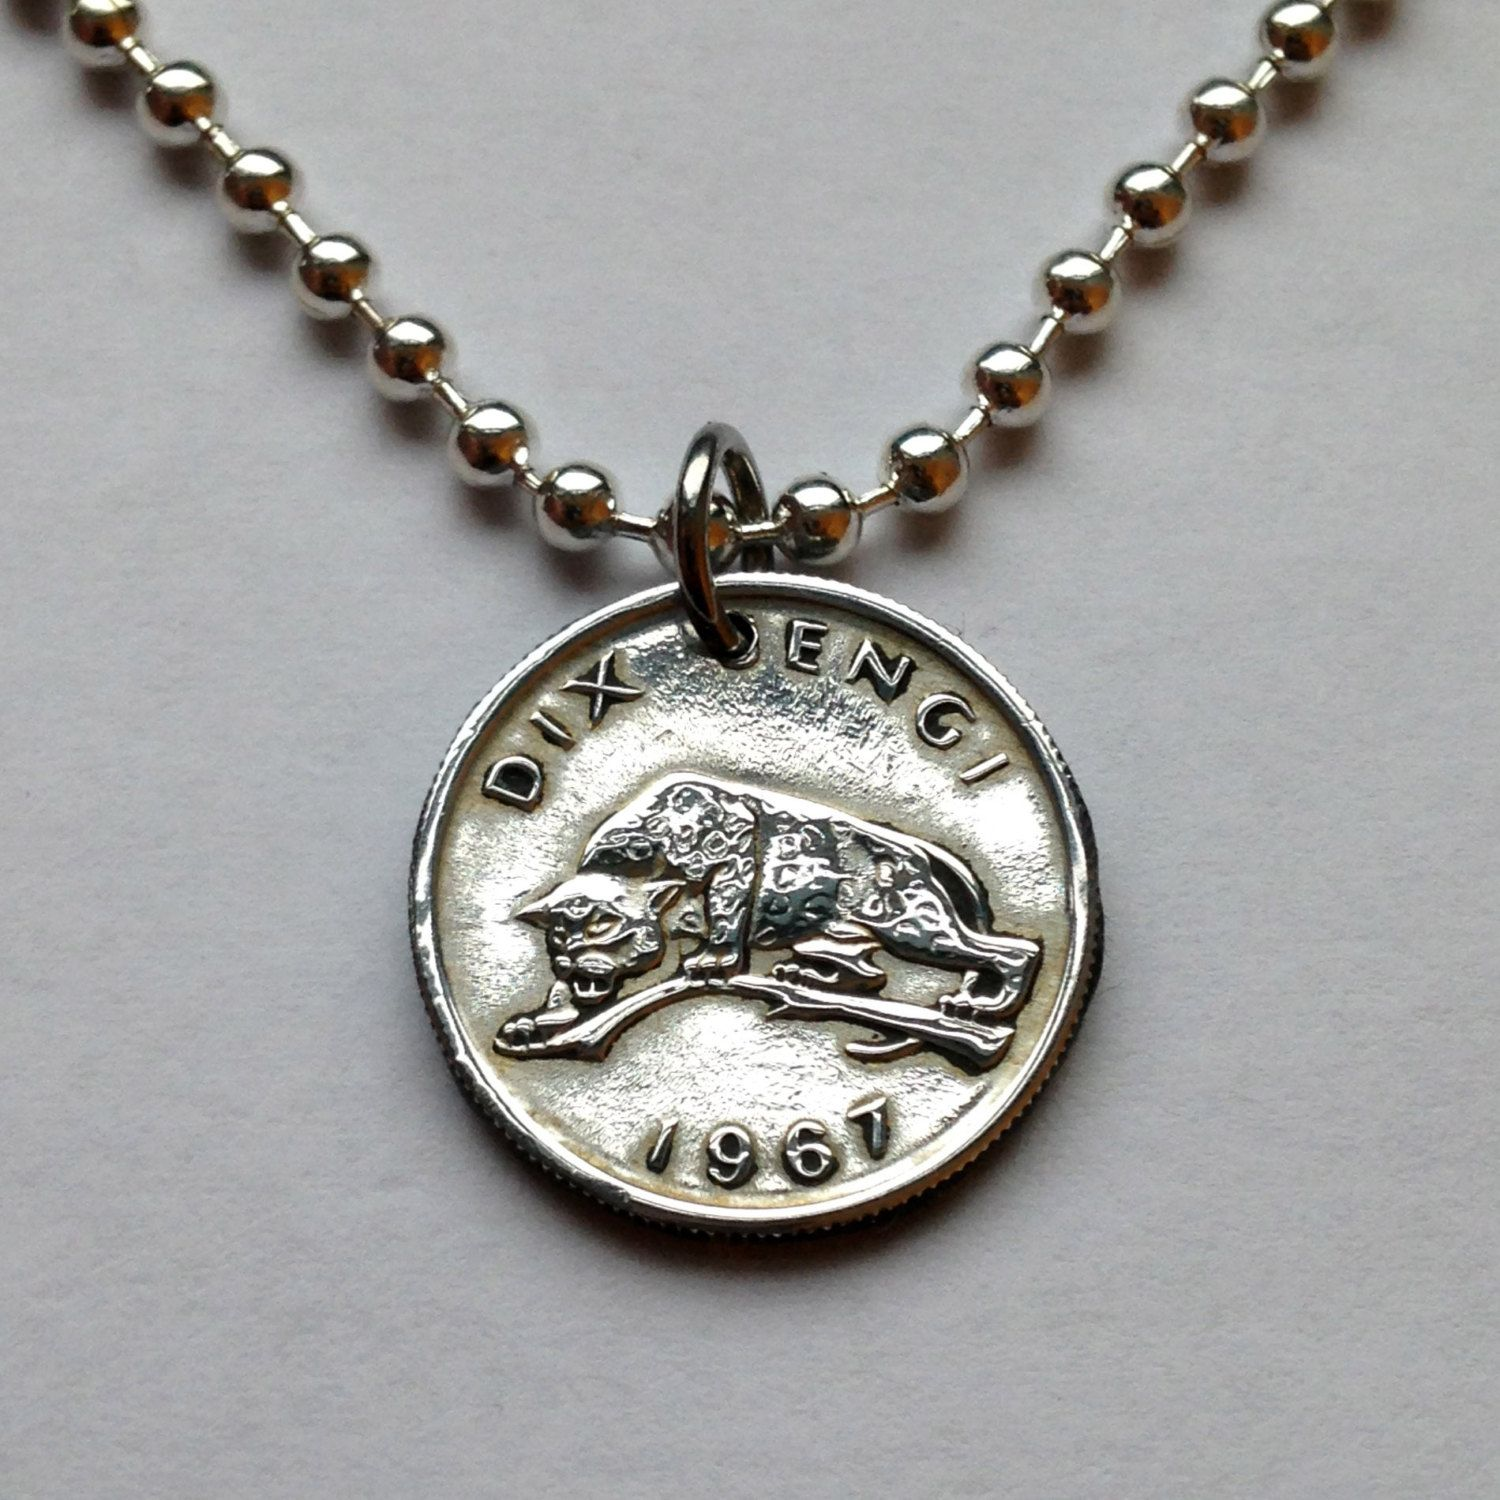 1967 Congo 10 Sengi Coin Pendant Charm Necklace Jewelry African Africa Leopard Tiger Feline Jungle Congolese No 001244 Coin Pendant Pendant Jewelry Necklaces